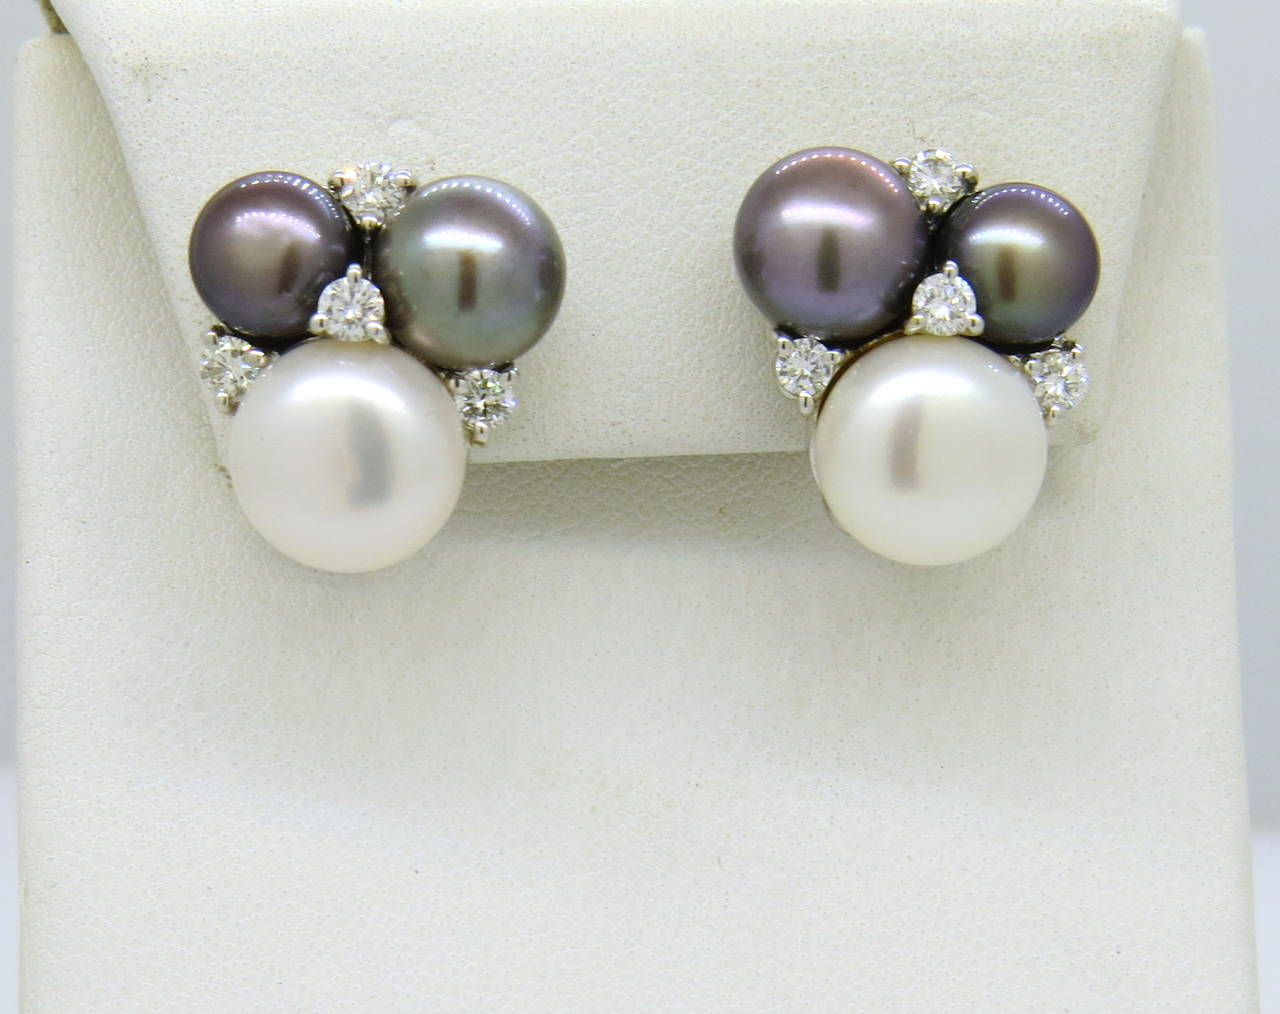 18k White Gold Earrings By Seaman Schepps With Pearls And Rox 0 60ctw In G